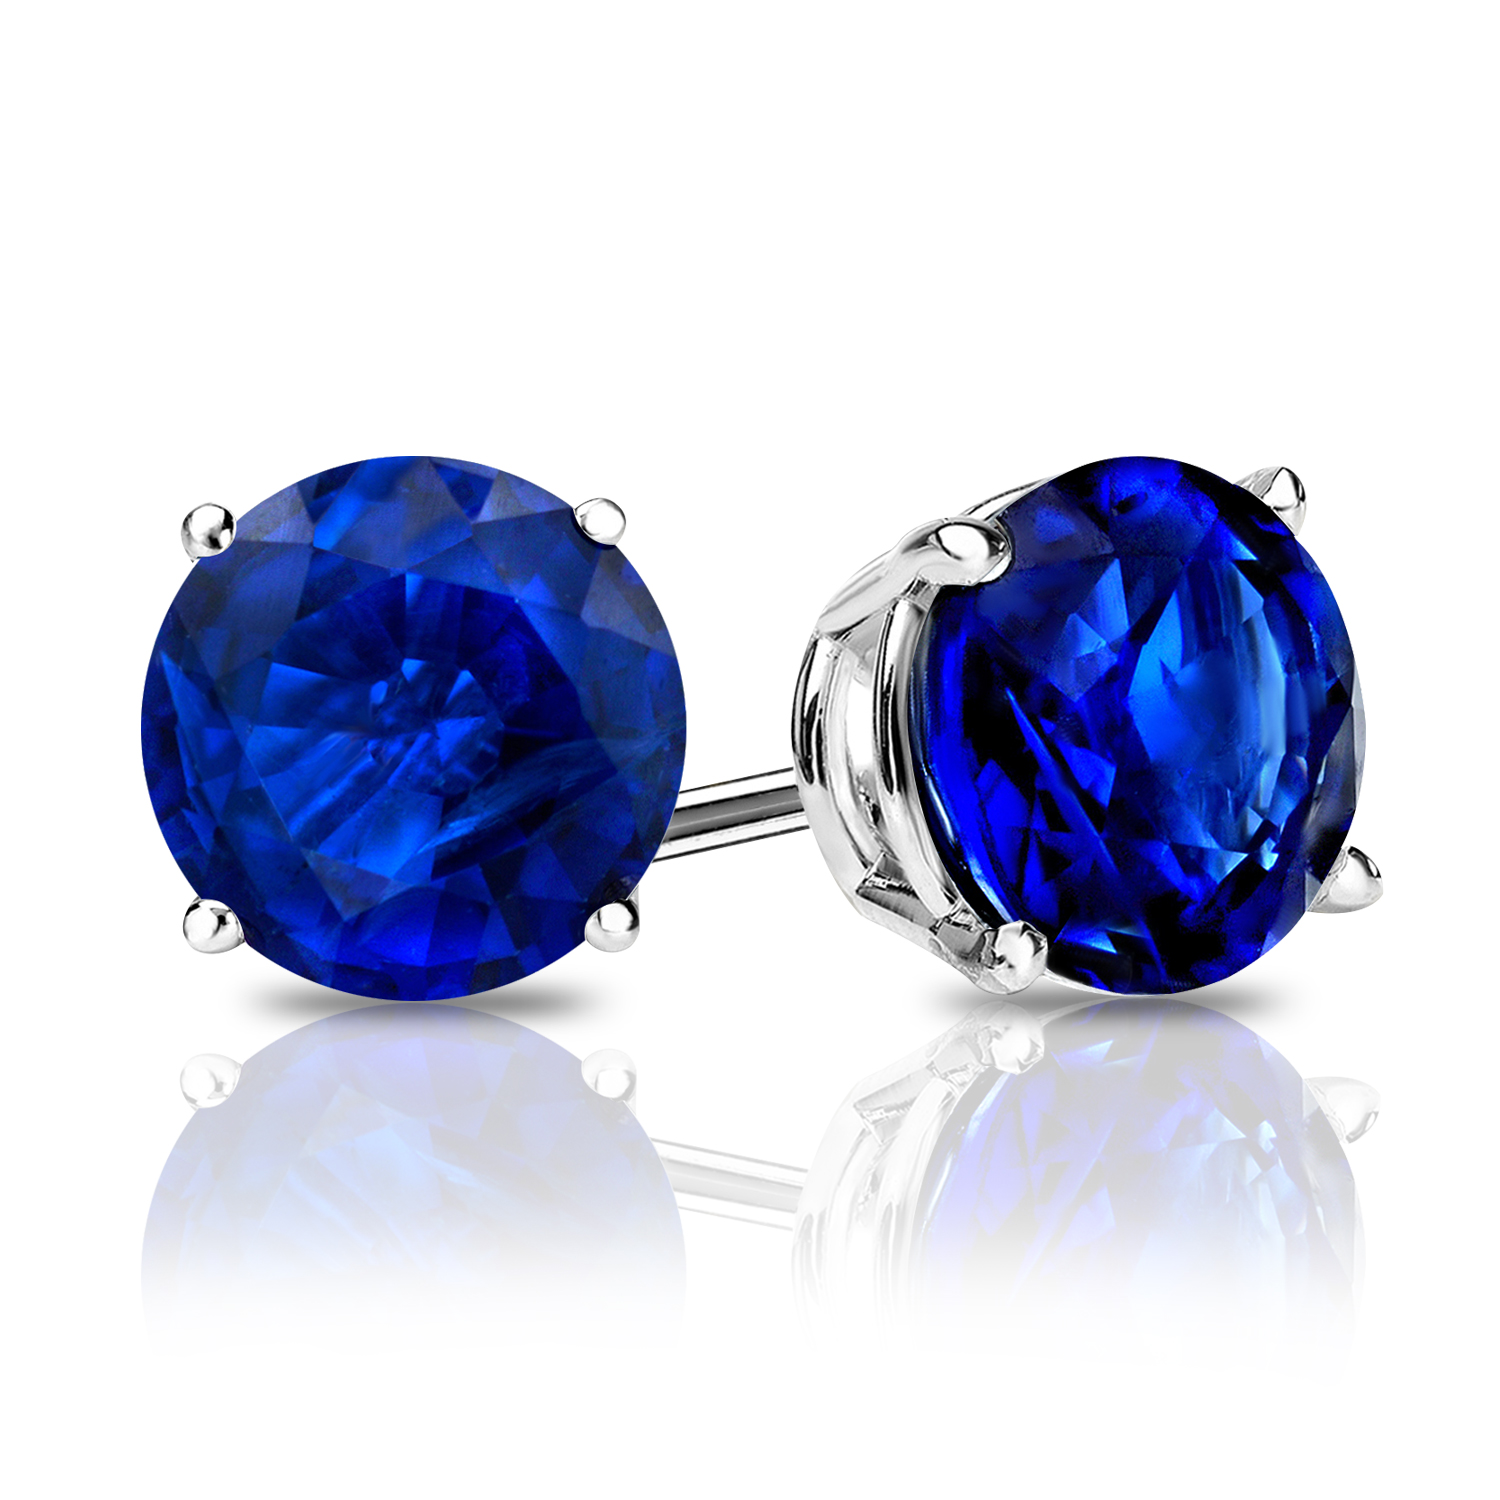 Certified 0.50 cttw Round Blue Sapphire Gemstone Stud Earrings in 14k White Gold 4-Prong Basket (Blue, AAA)